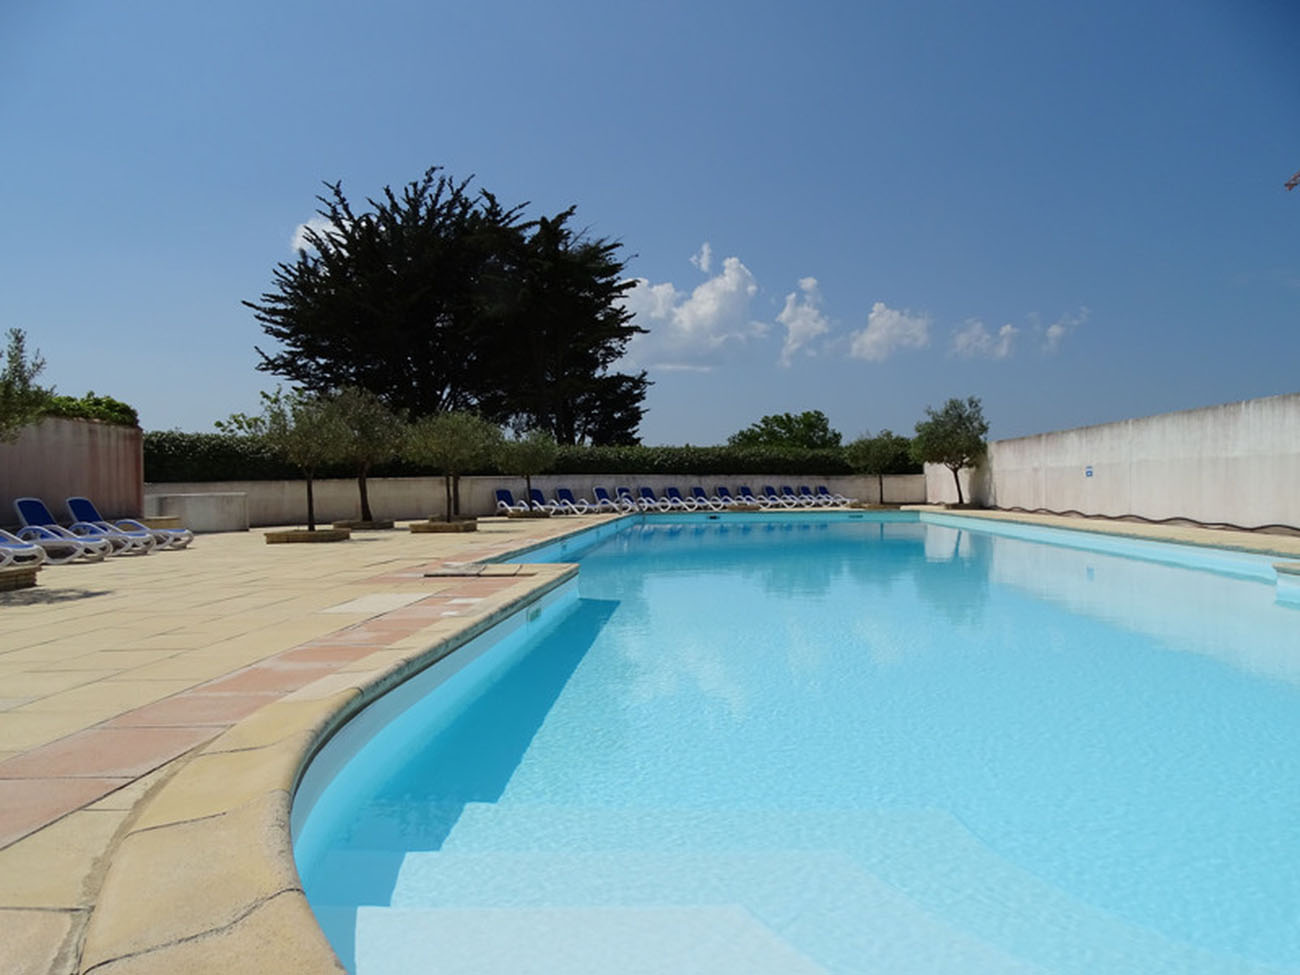 Location Appartement Ile de Ré - Carline - Piscine